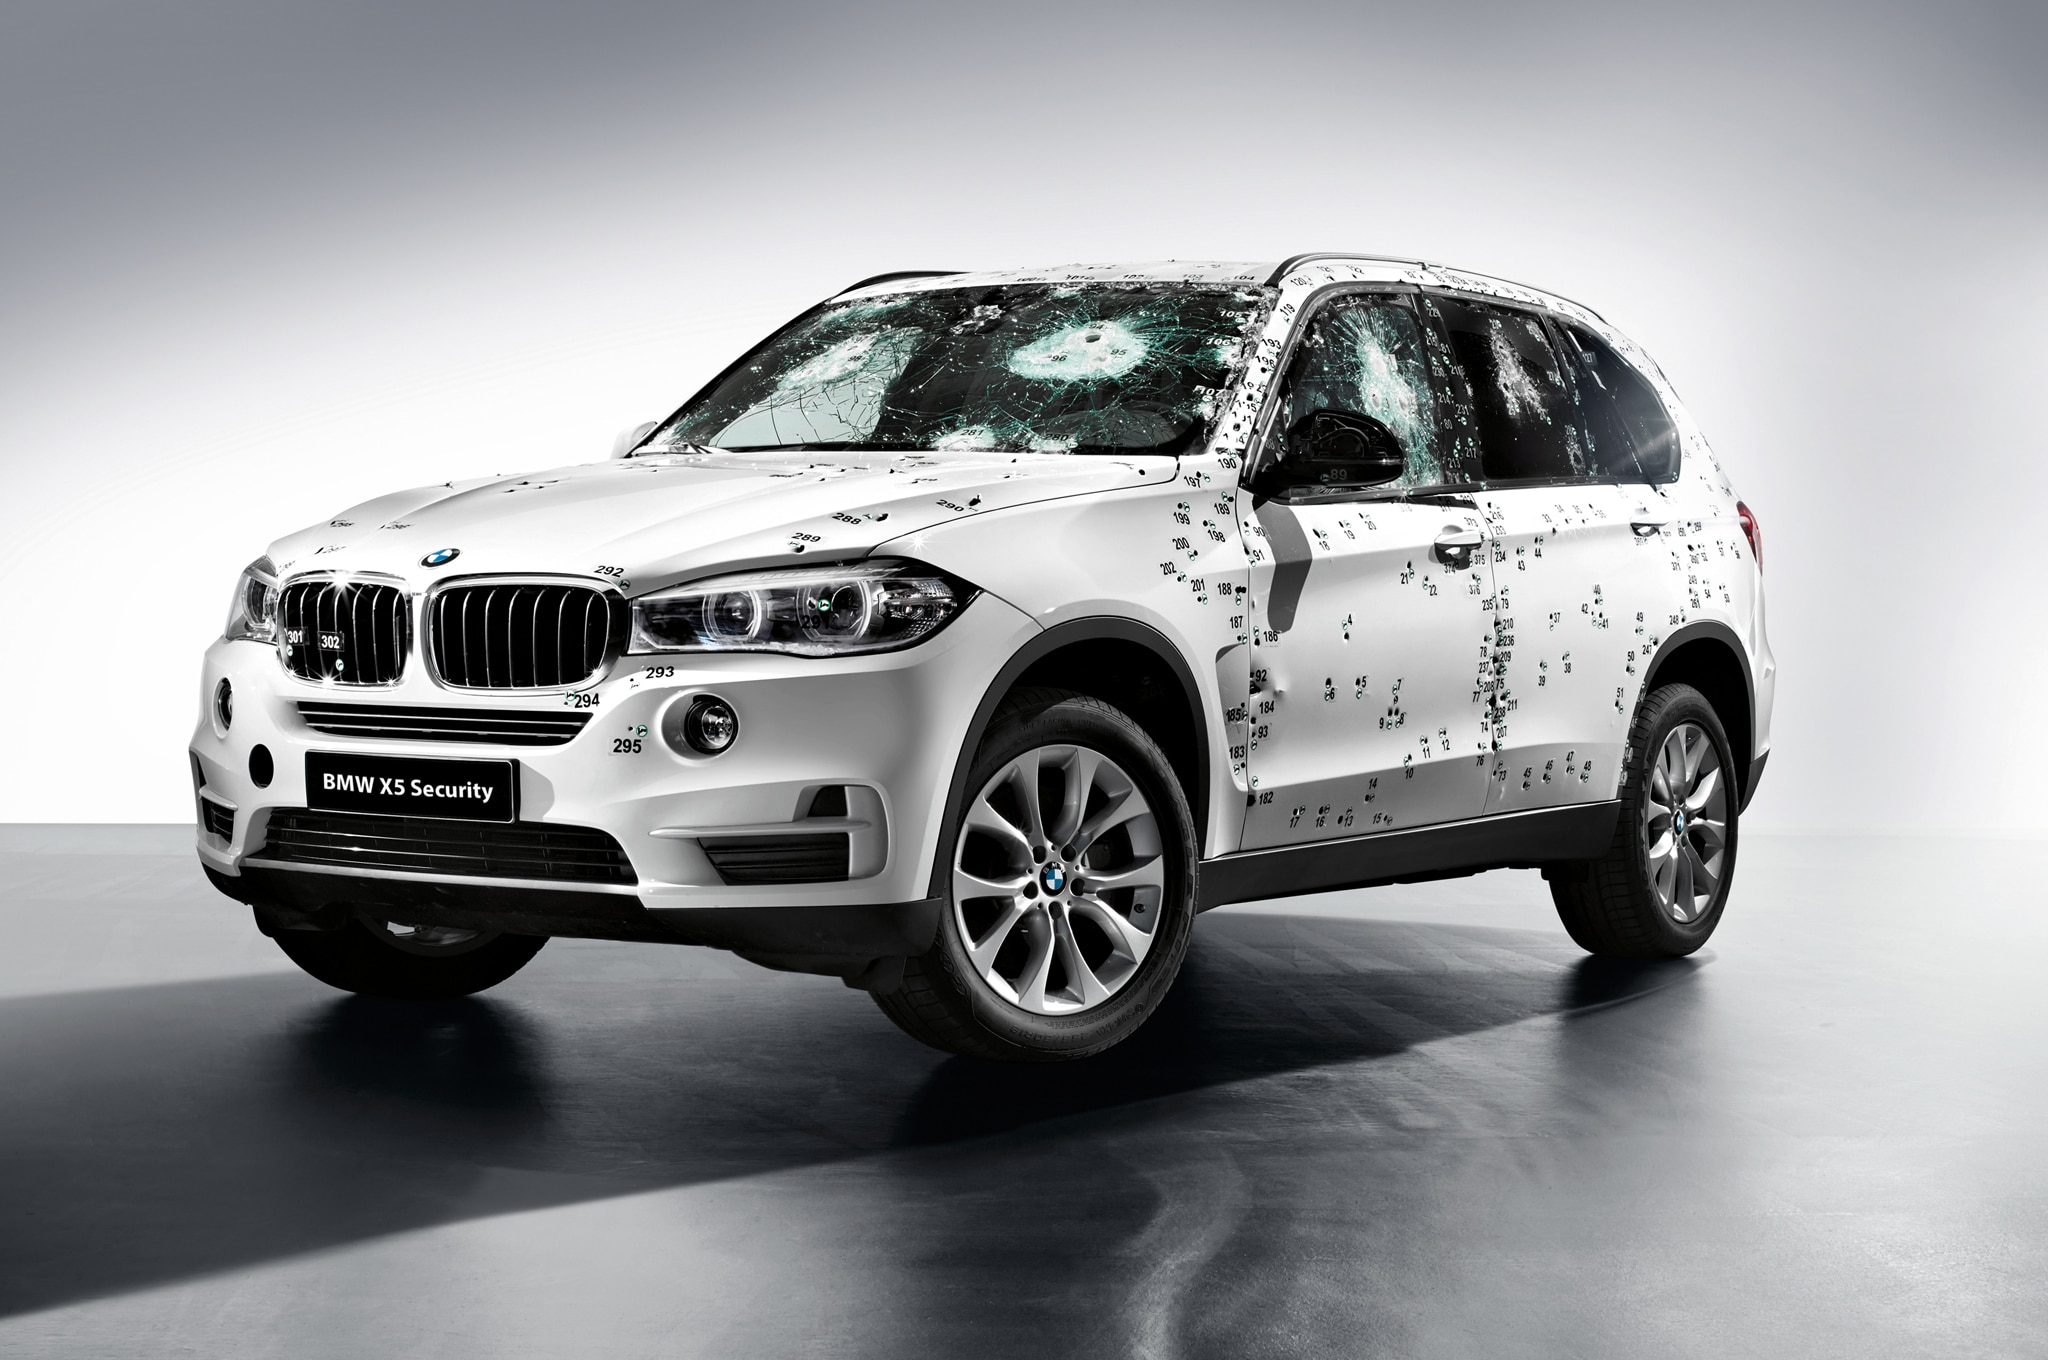 2015 BMW X5 Security Plus: AK-47 Proof